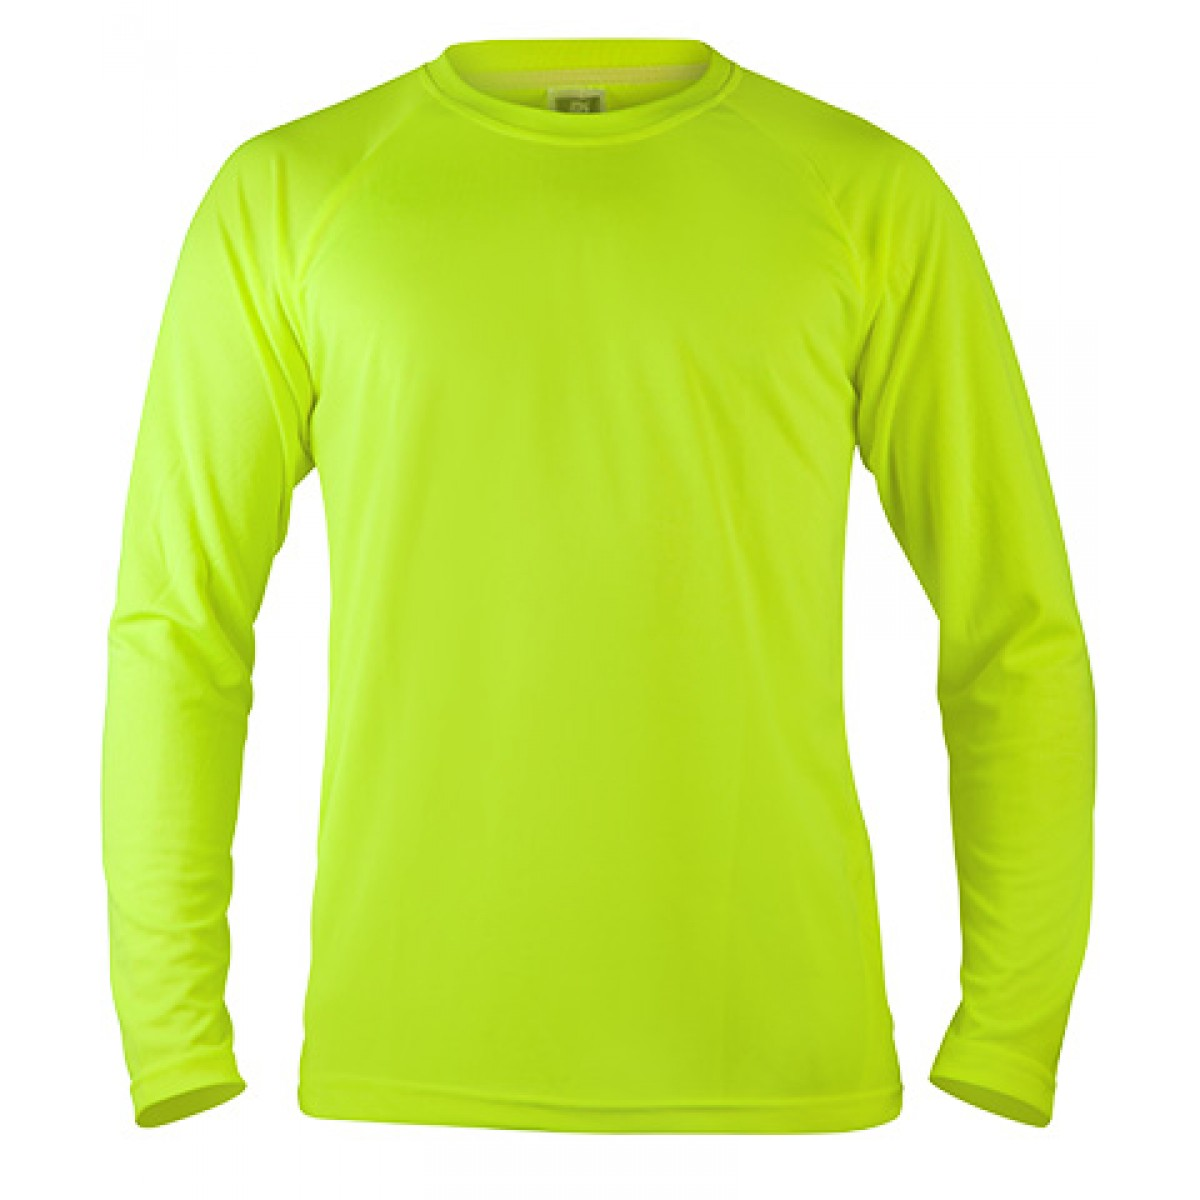 Long Sleeve Mesh Performance T-shirt-Neon Green-XS